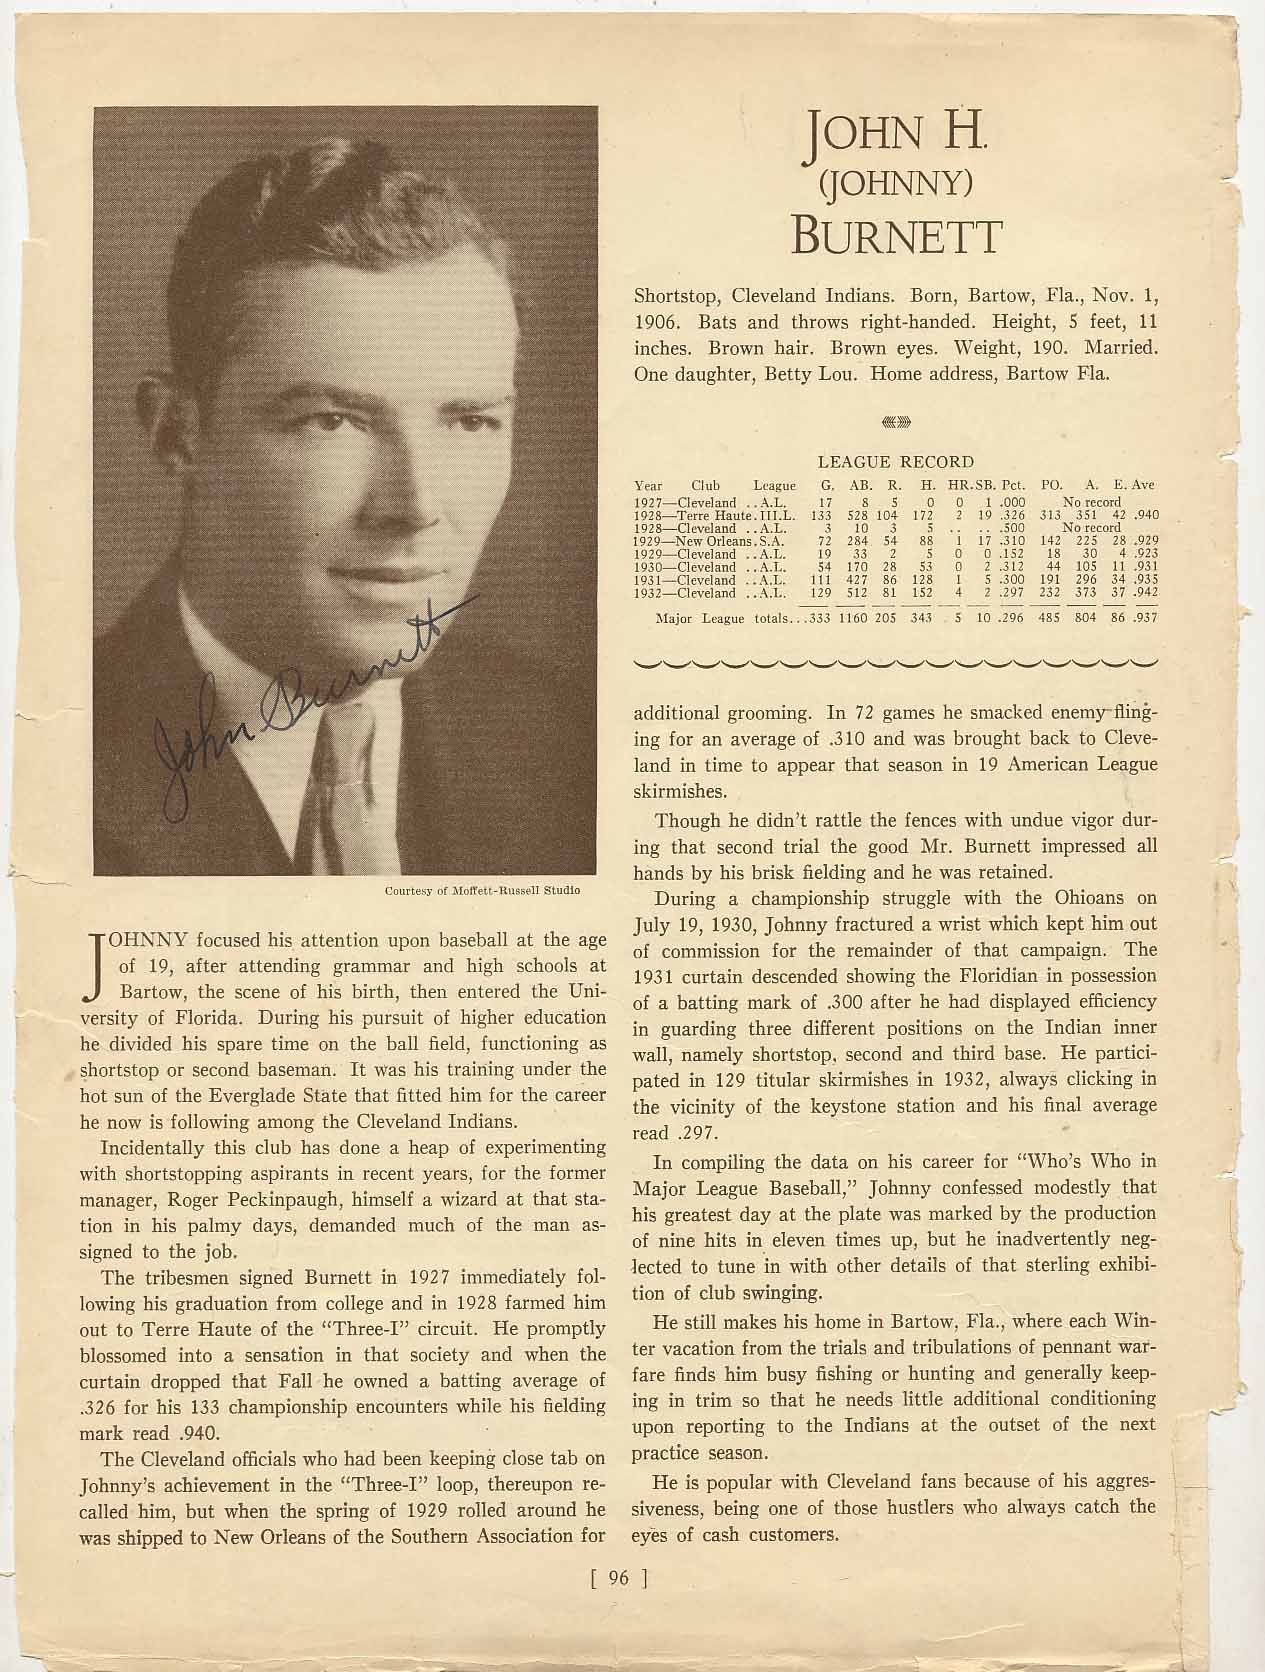 Lot #8  Who's Who Page  Burnett, Johnny Cond: 9.5